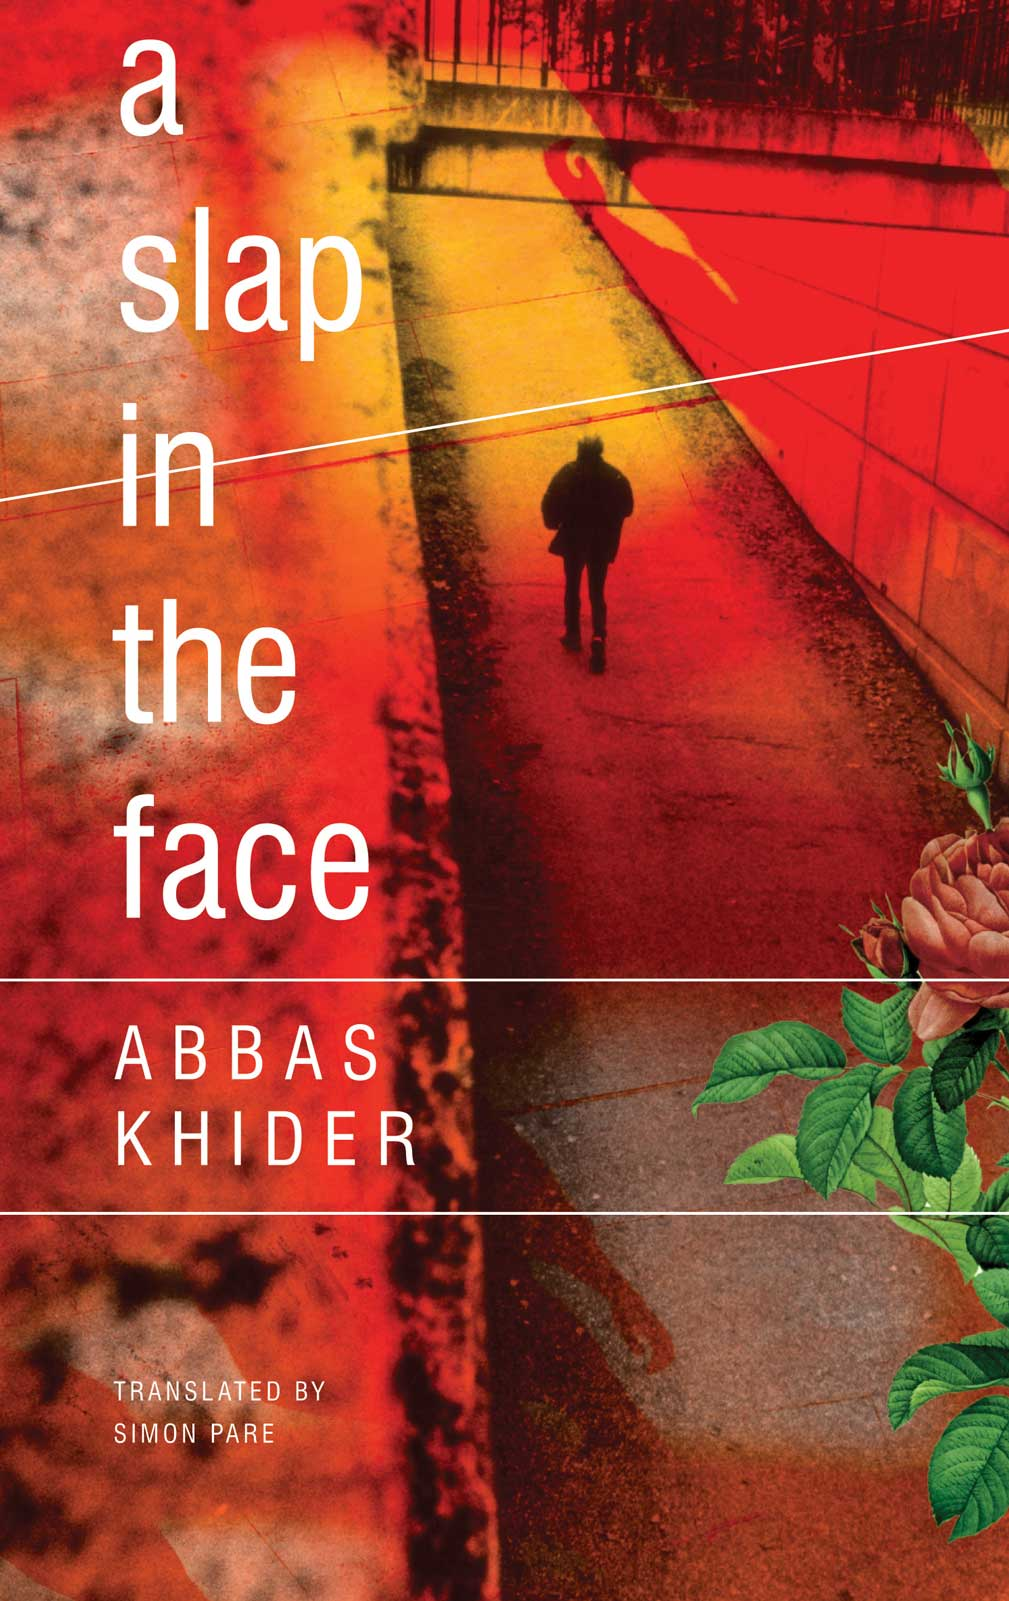 A Slap in the Face by Abbas Khider | Seagull Books